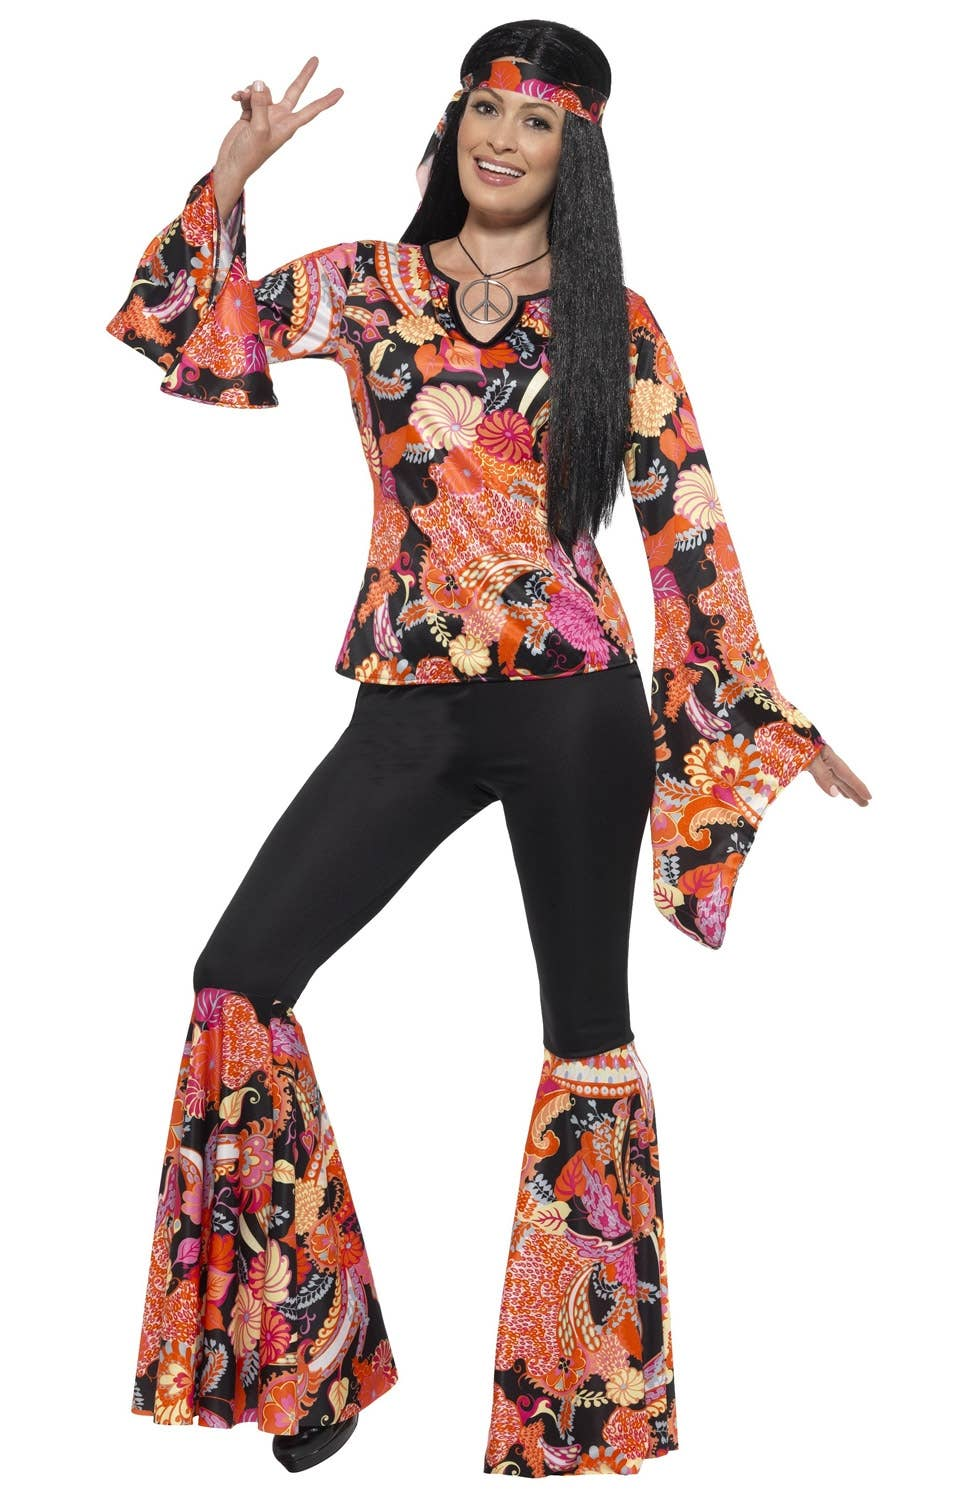 f8ade39d6c7 Details about Willow The Hippie Womens 1970s Costume Genuine Smiffys - New